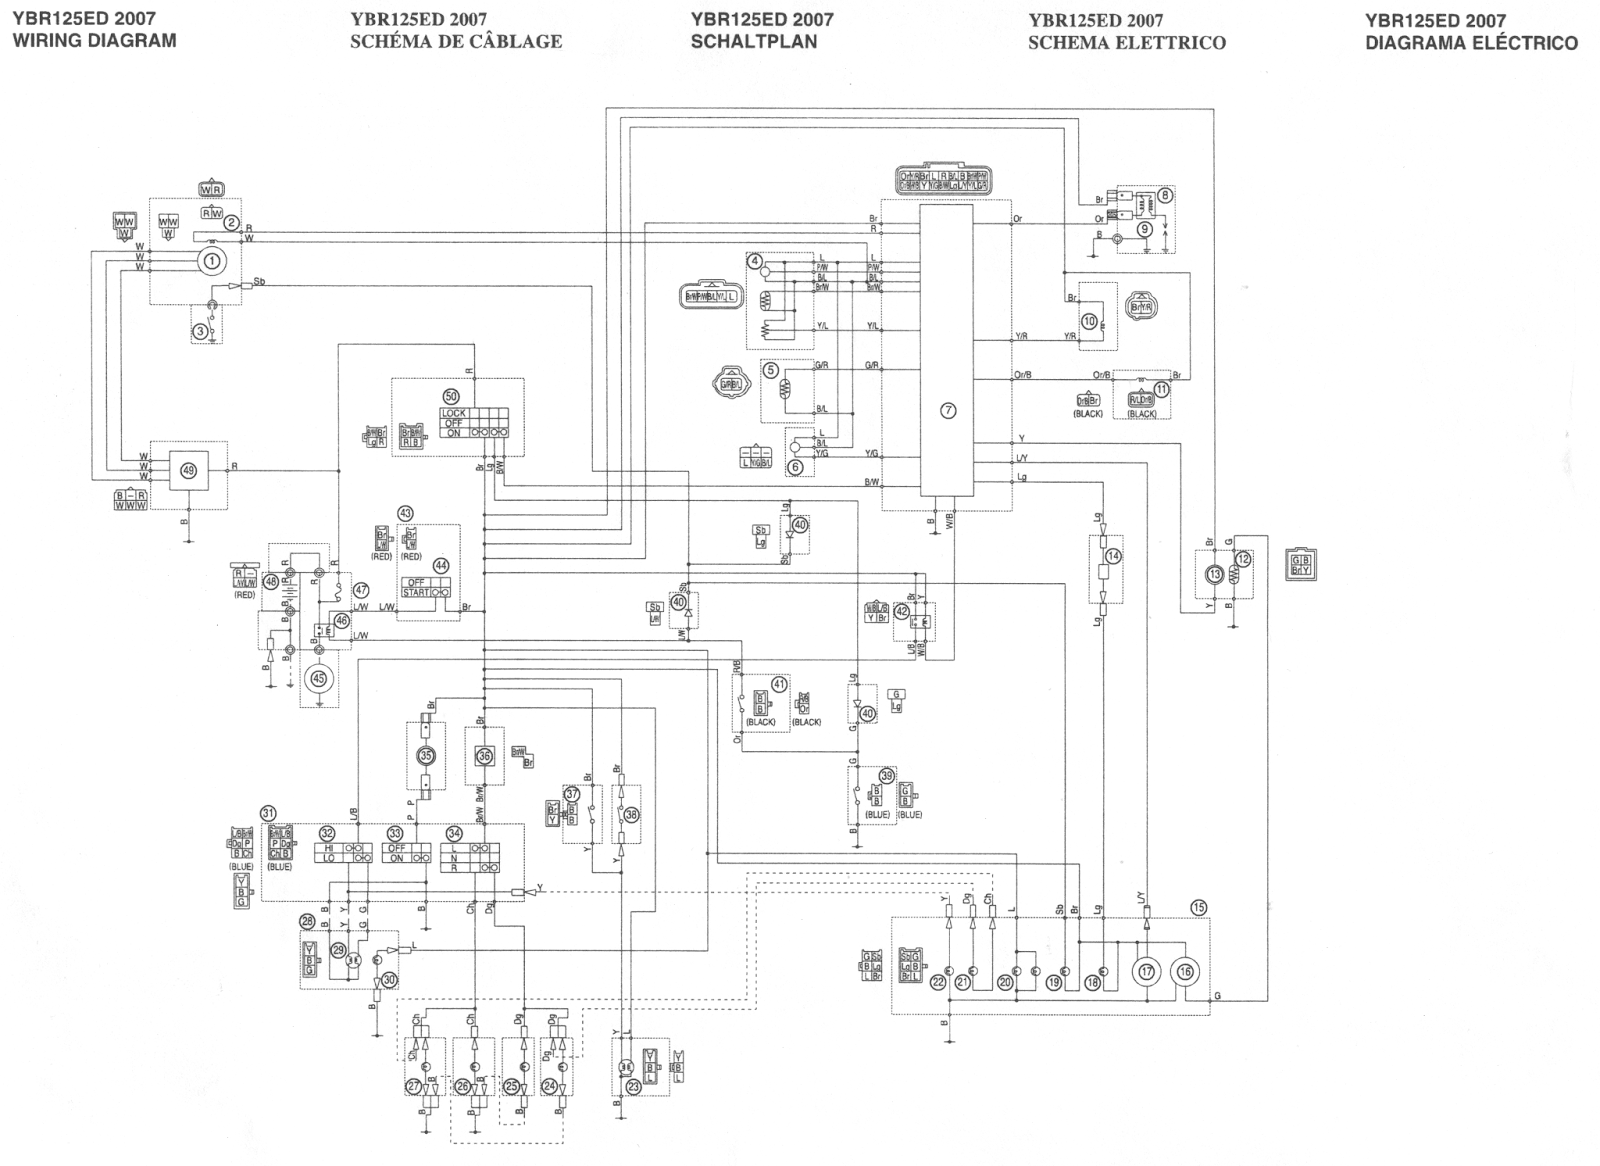 Yamaha Ybr 125 Owner Blog   Yamaha Ybr 125 Electrical System   Wiring Diagrams And Components